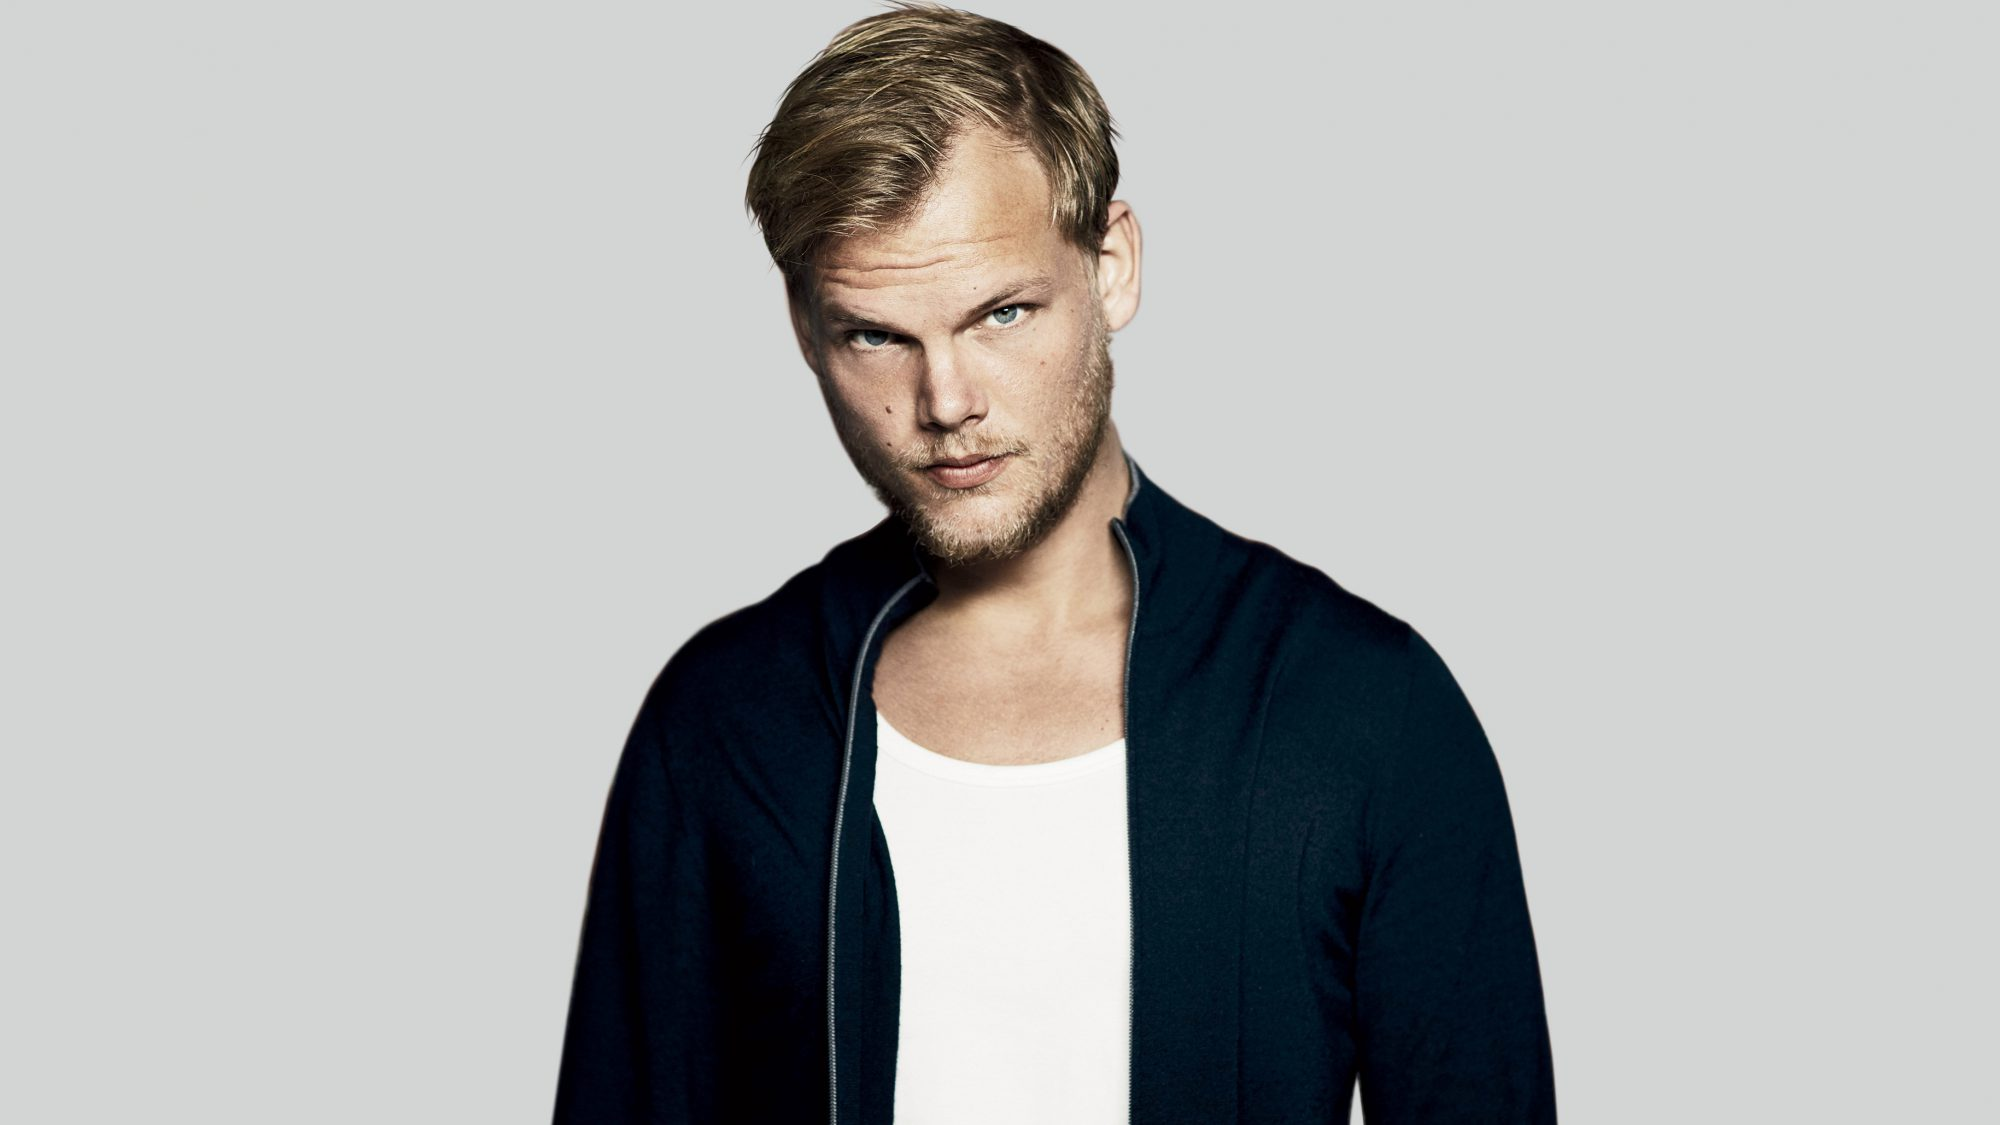 Memories of Avicii's friends a year after his death